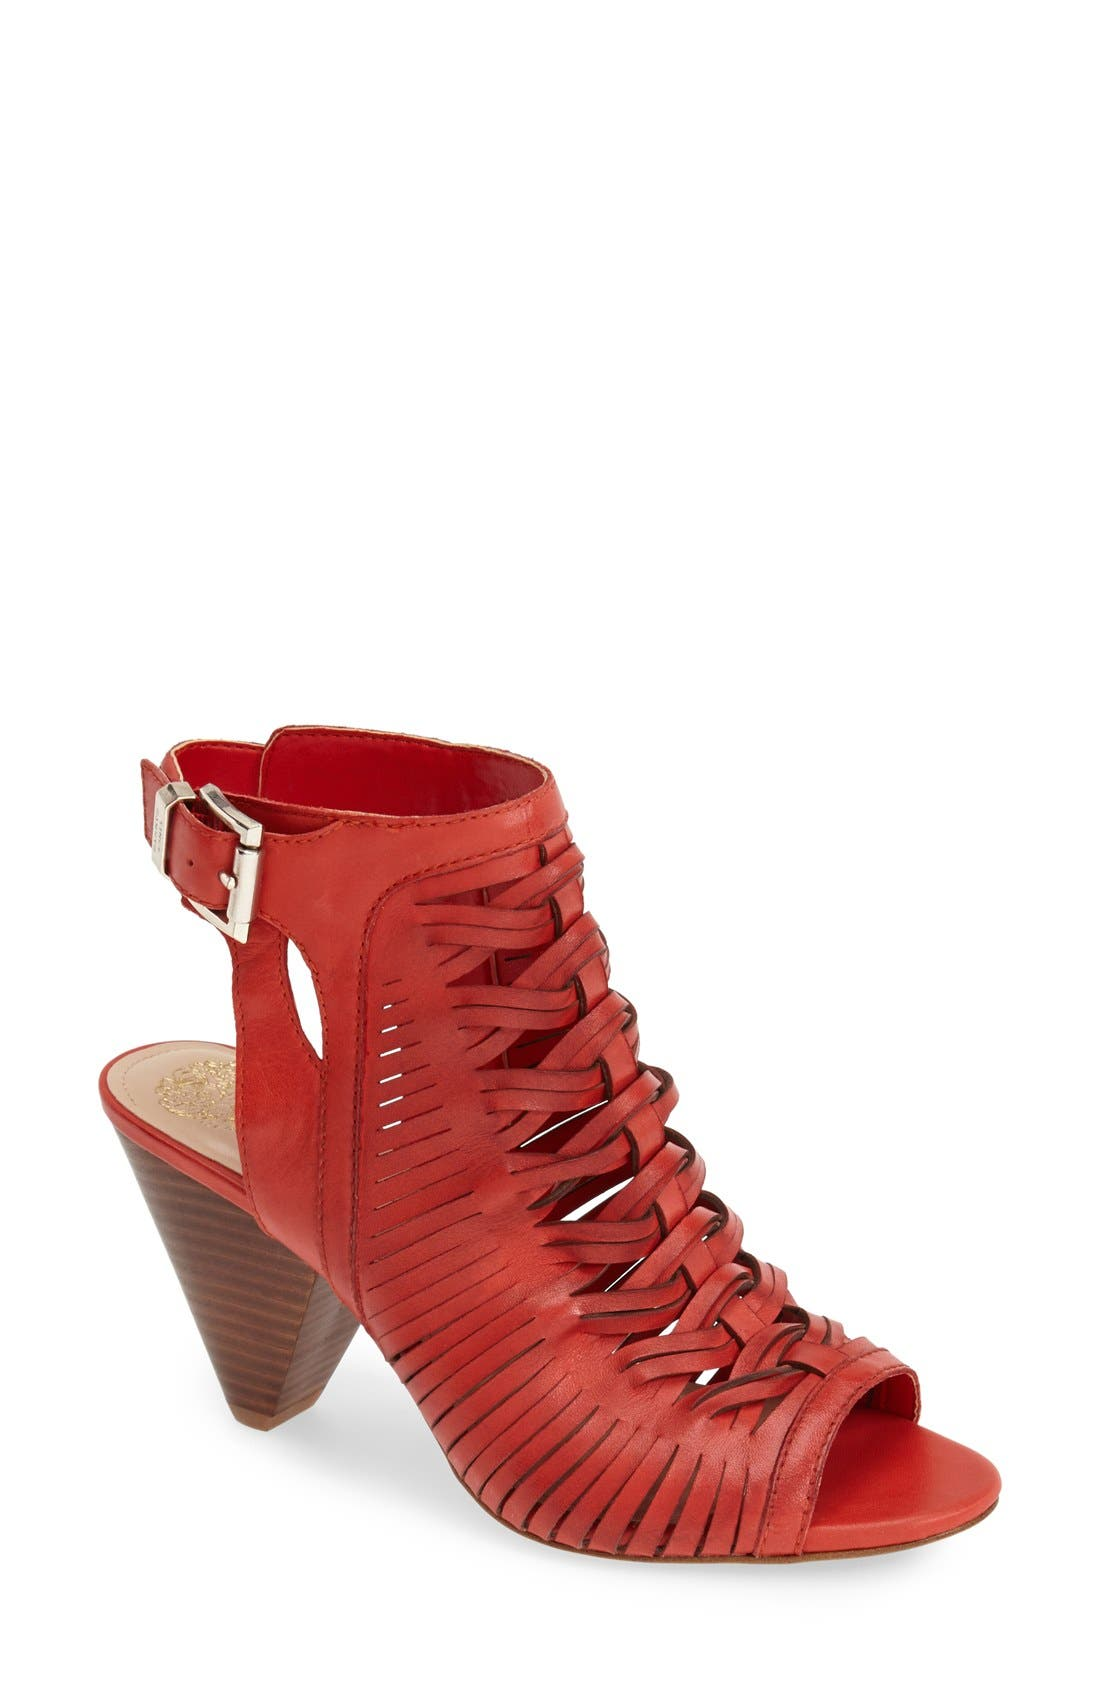 Main Image - Vince Camuto 'Emore' Leather Sandal (Women) (Nordstrom Exclusive)